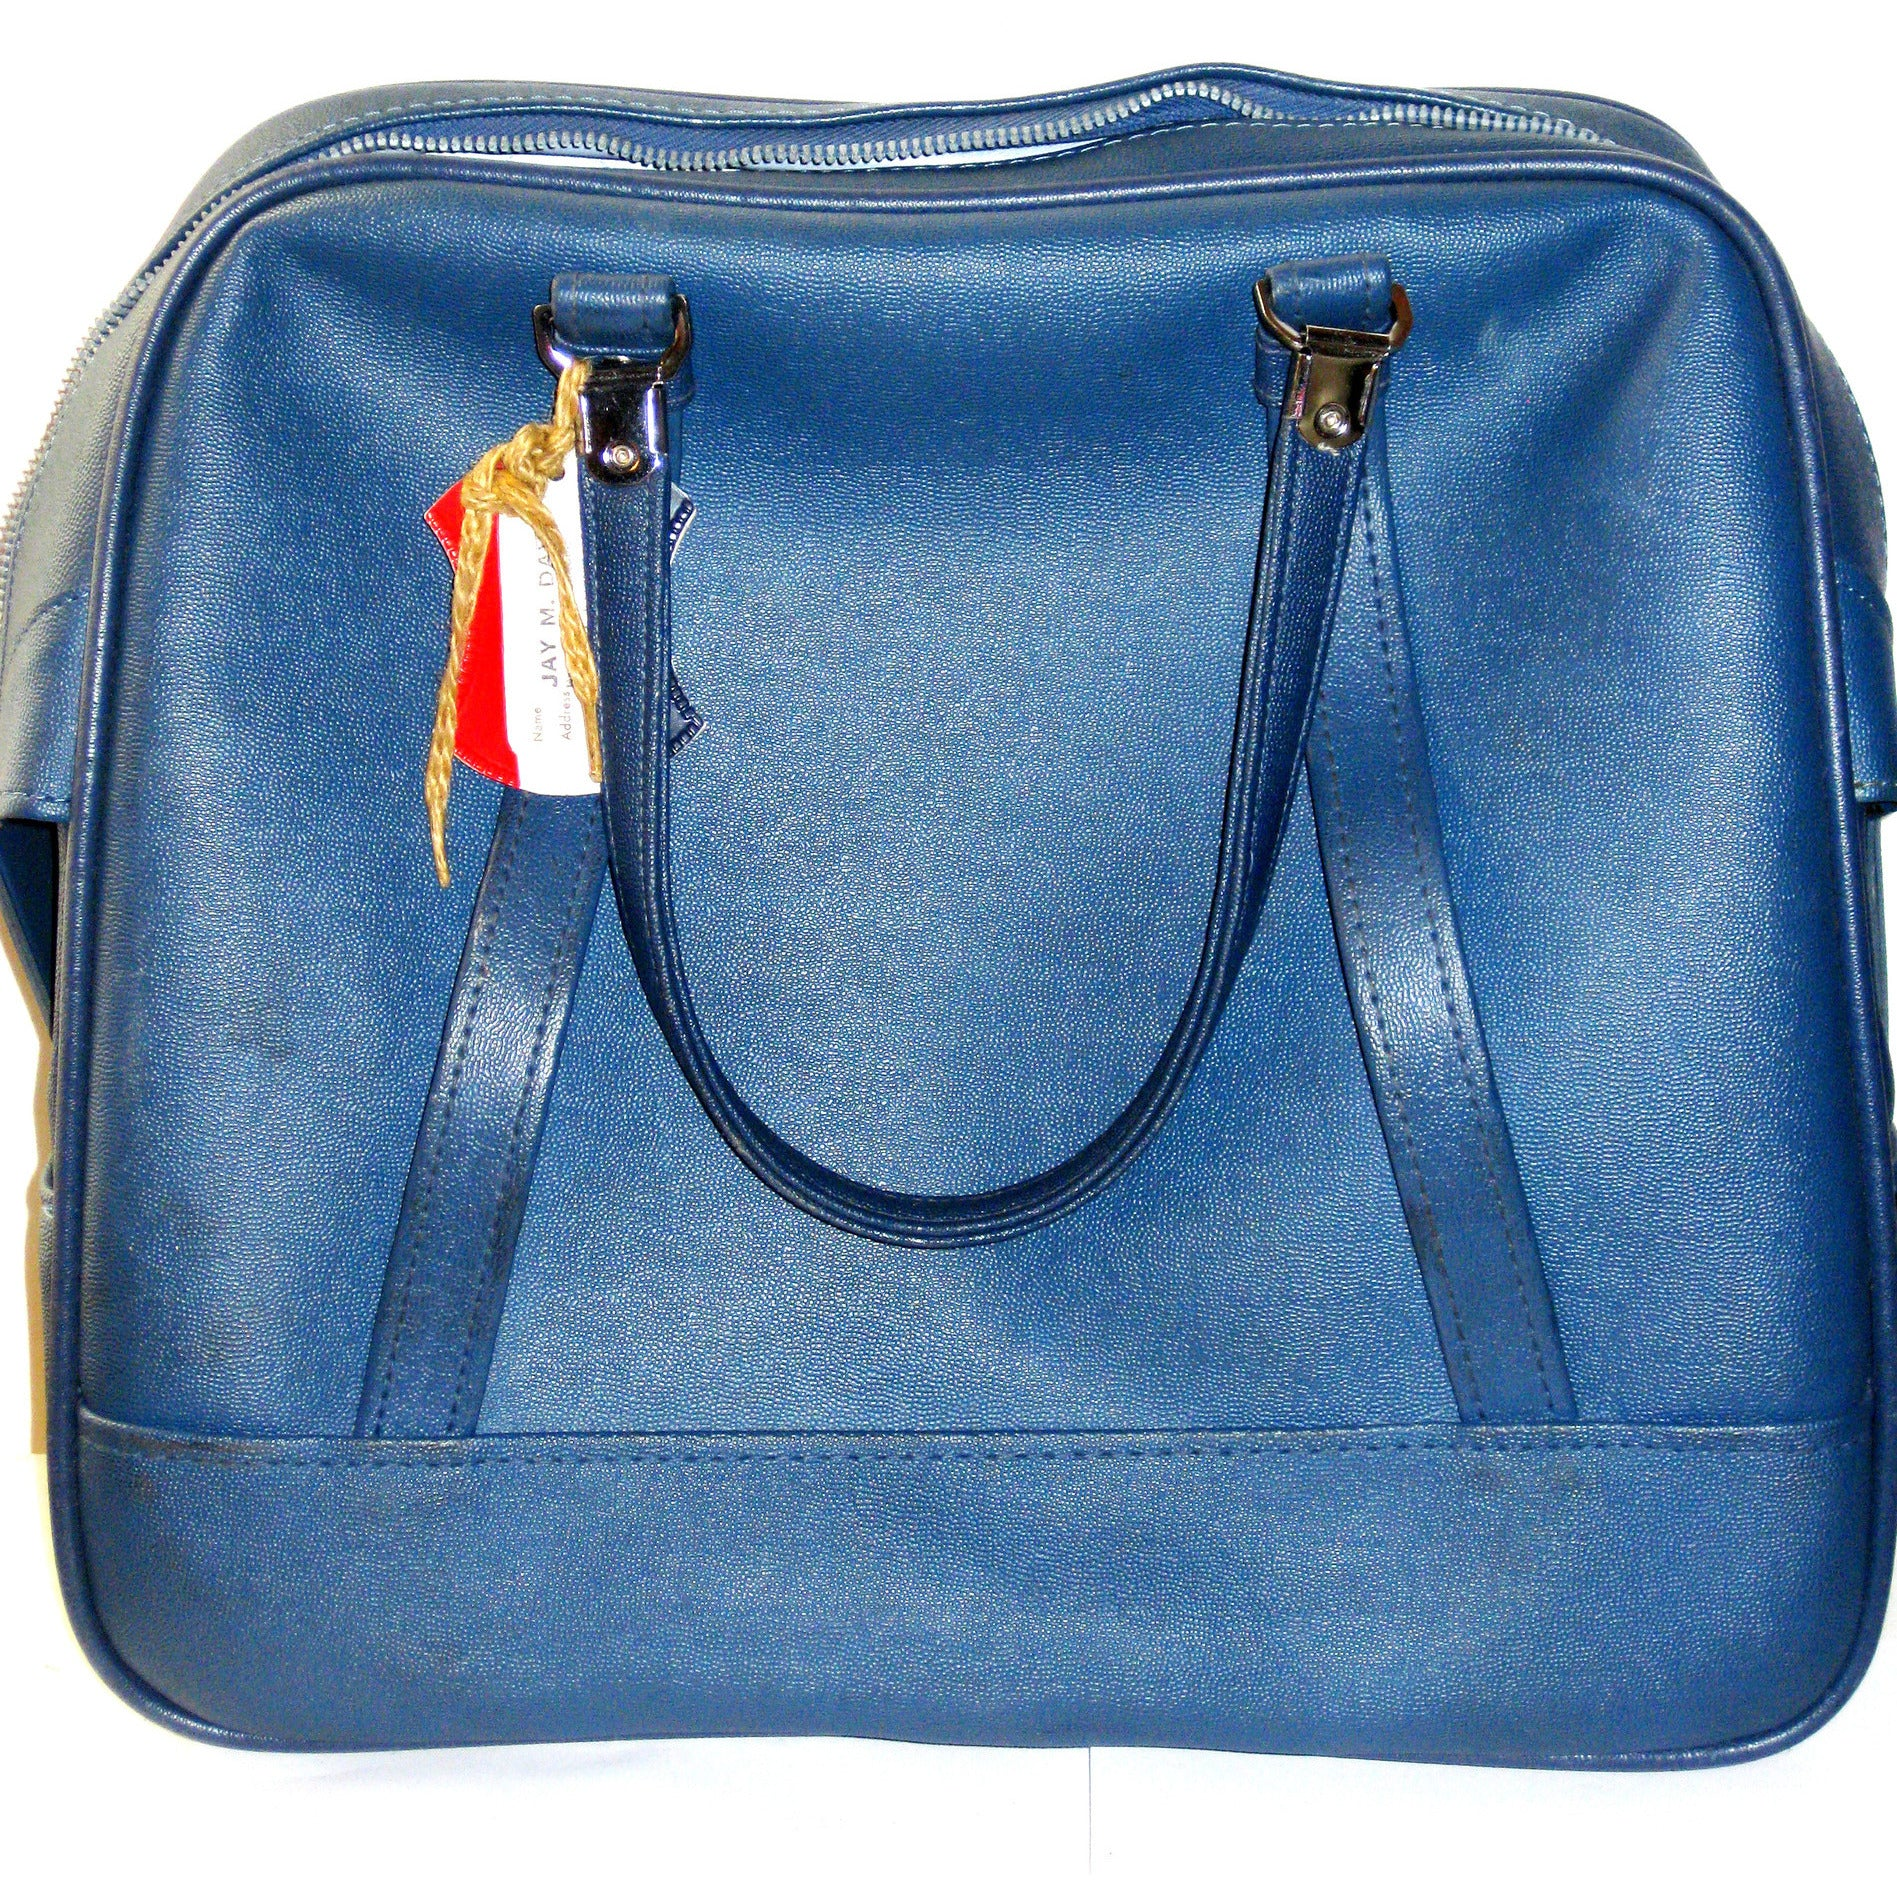 Vintage Blue Travelbag By American Tourister